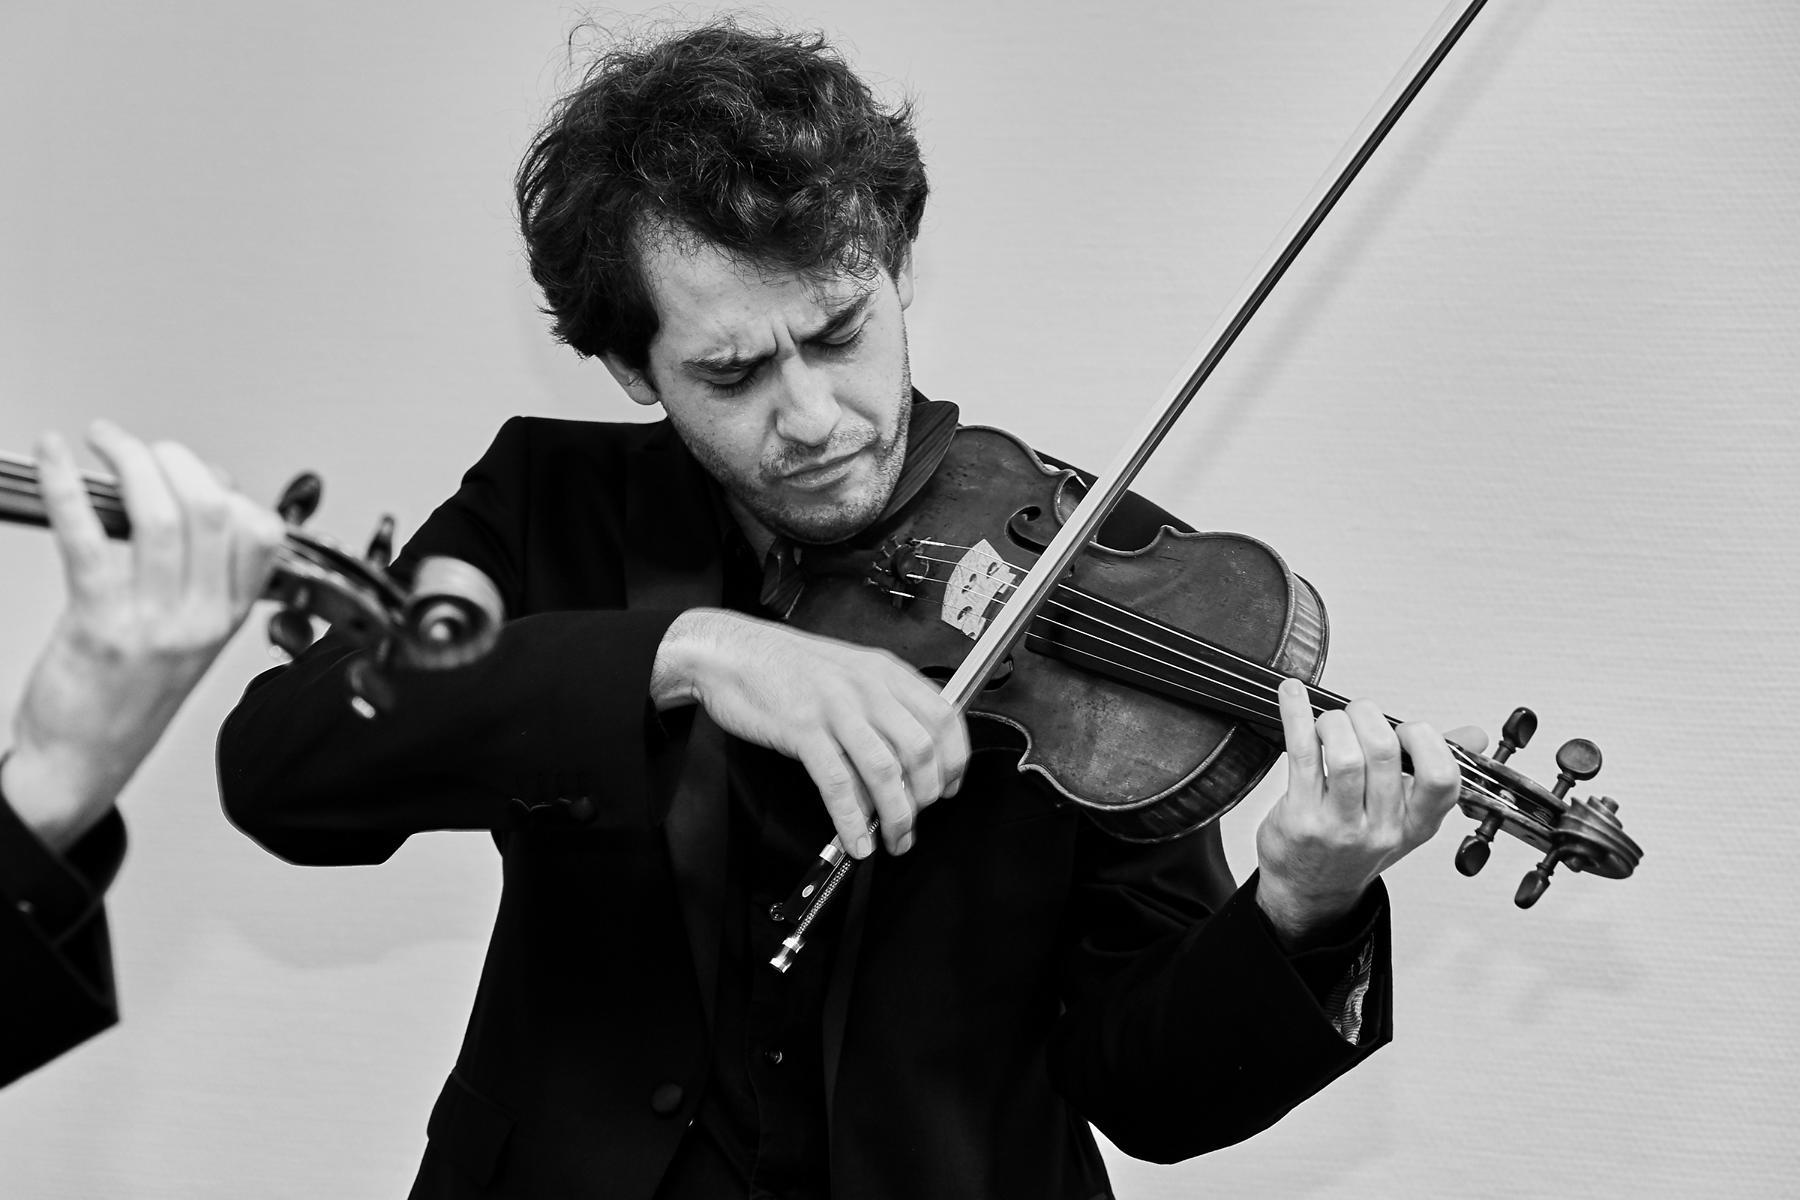 Daniel Stoll playing violin